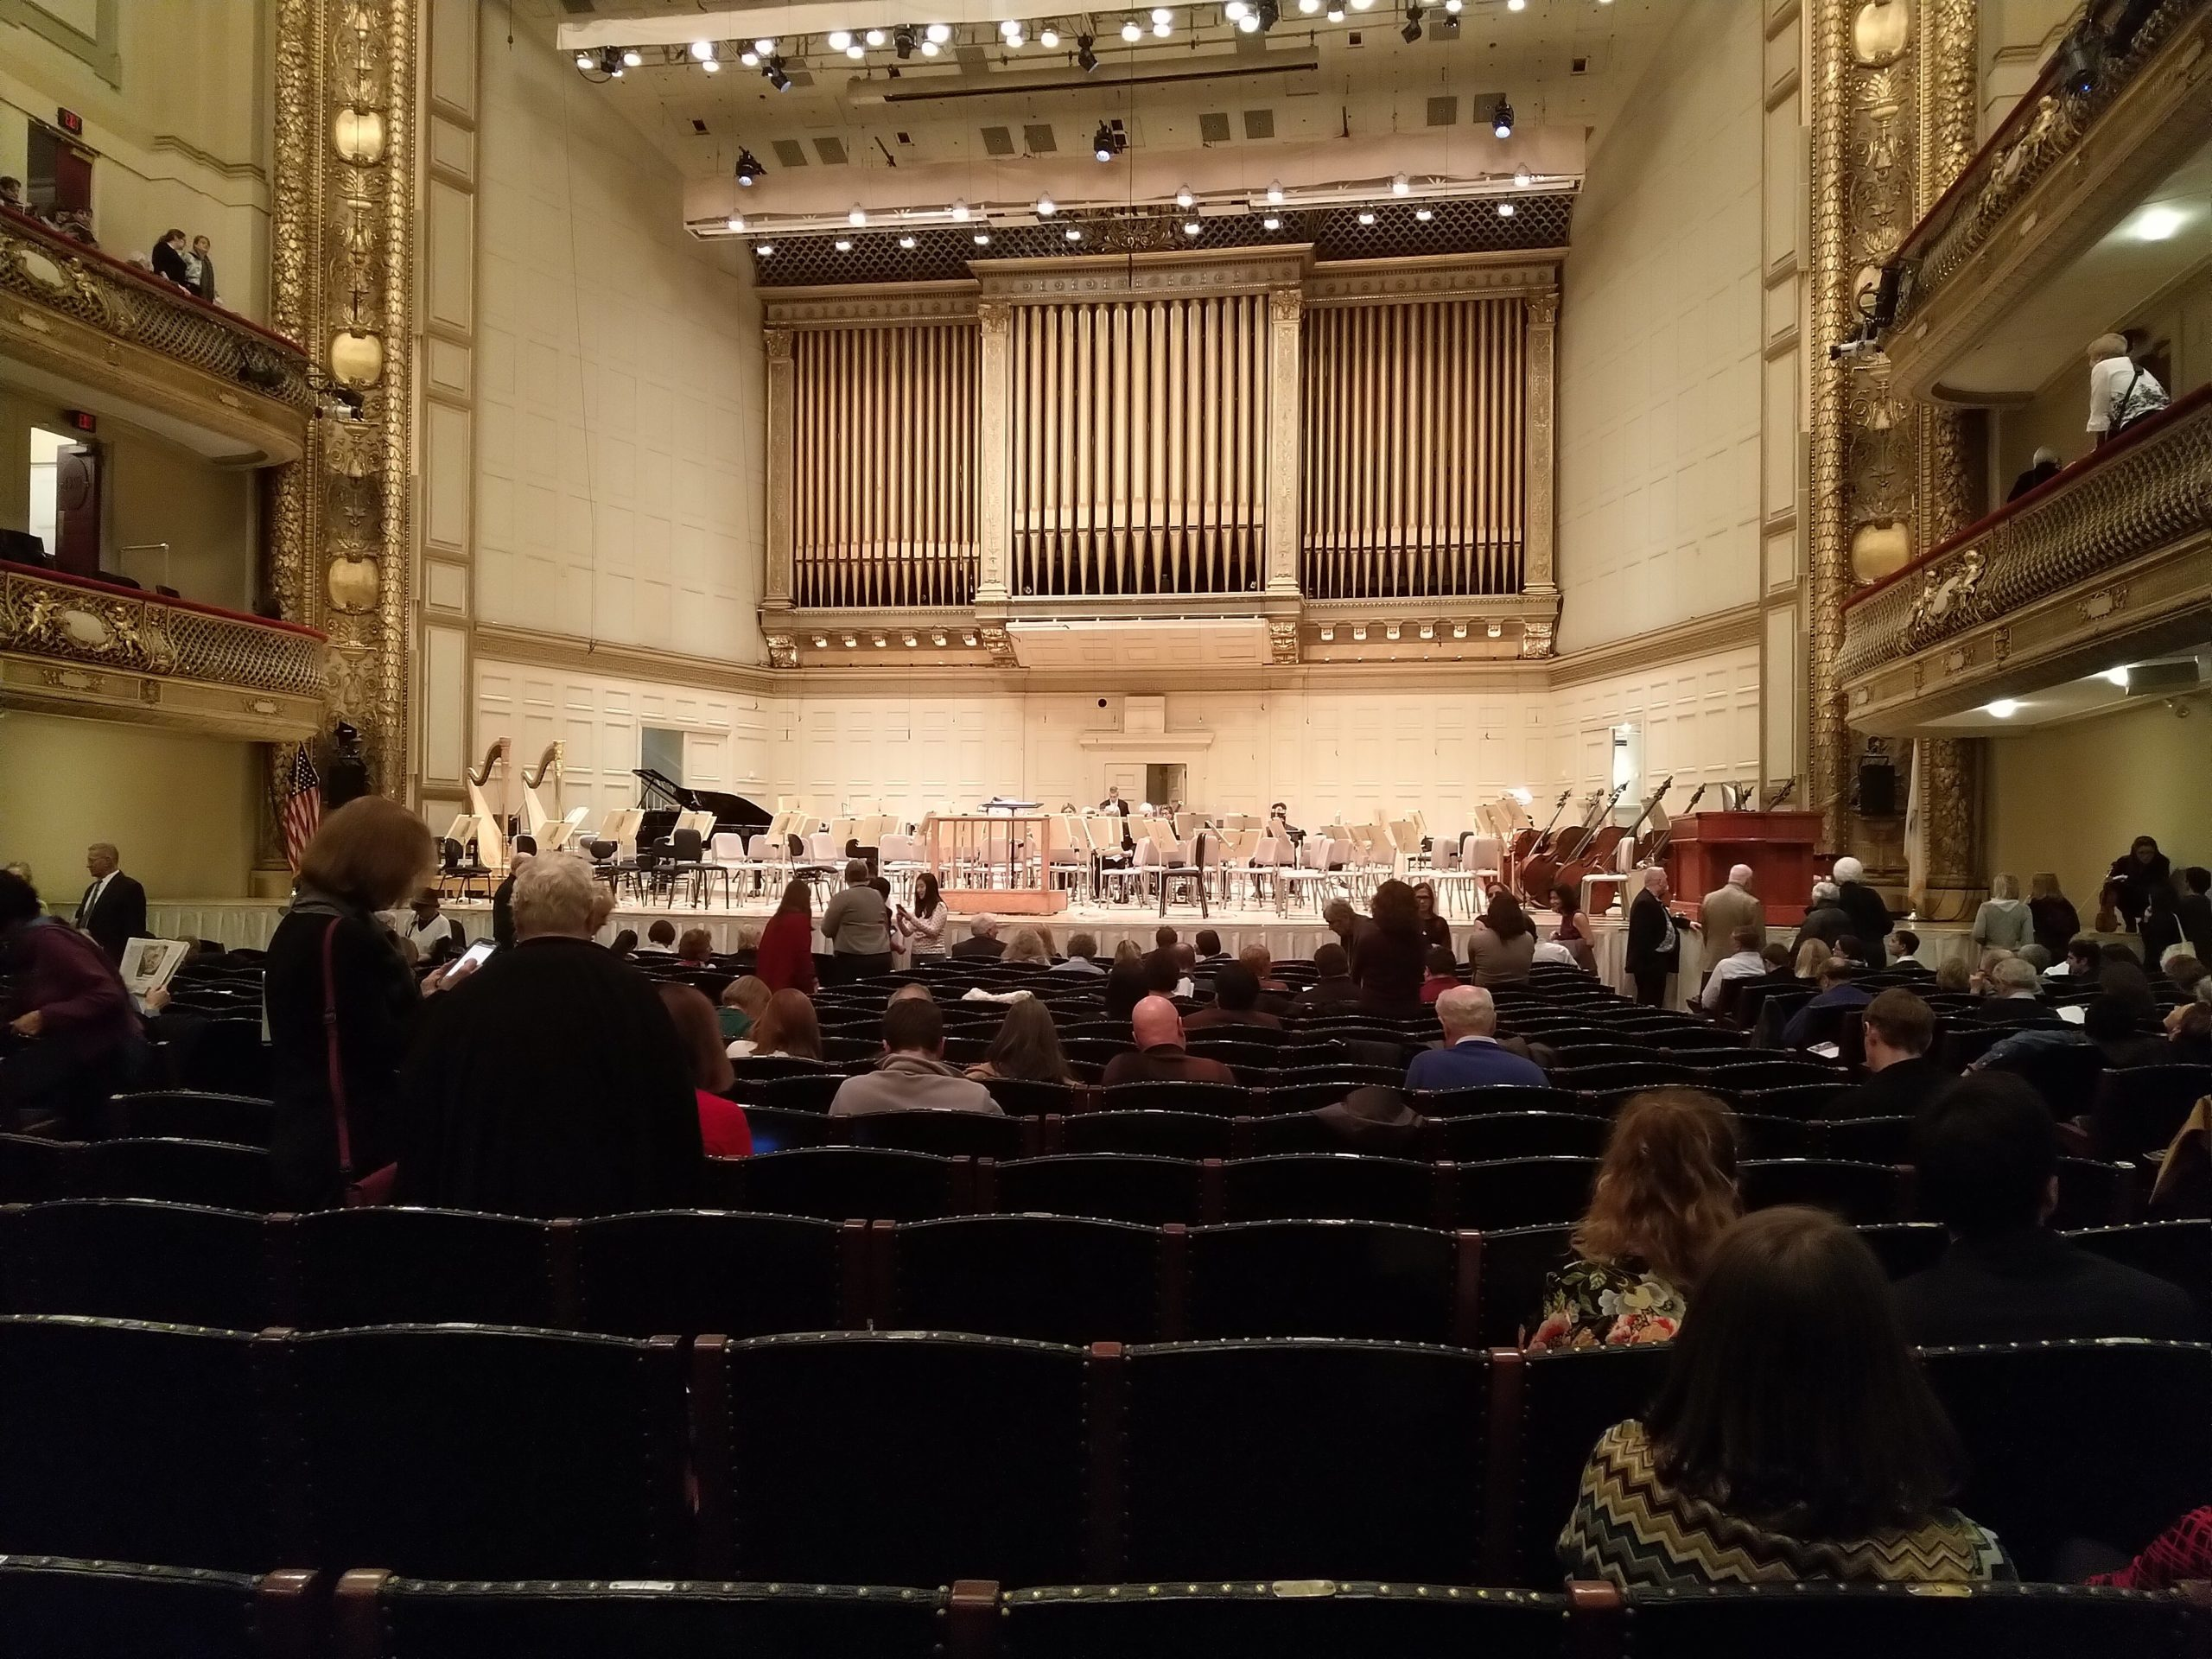 bso's concert hall